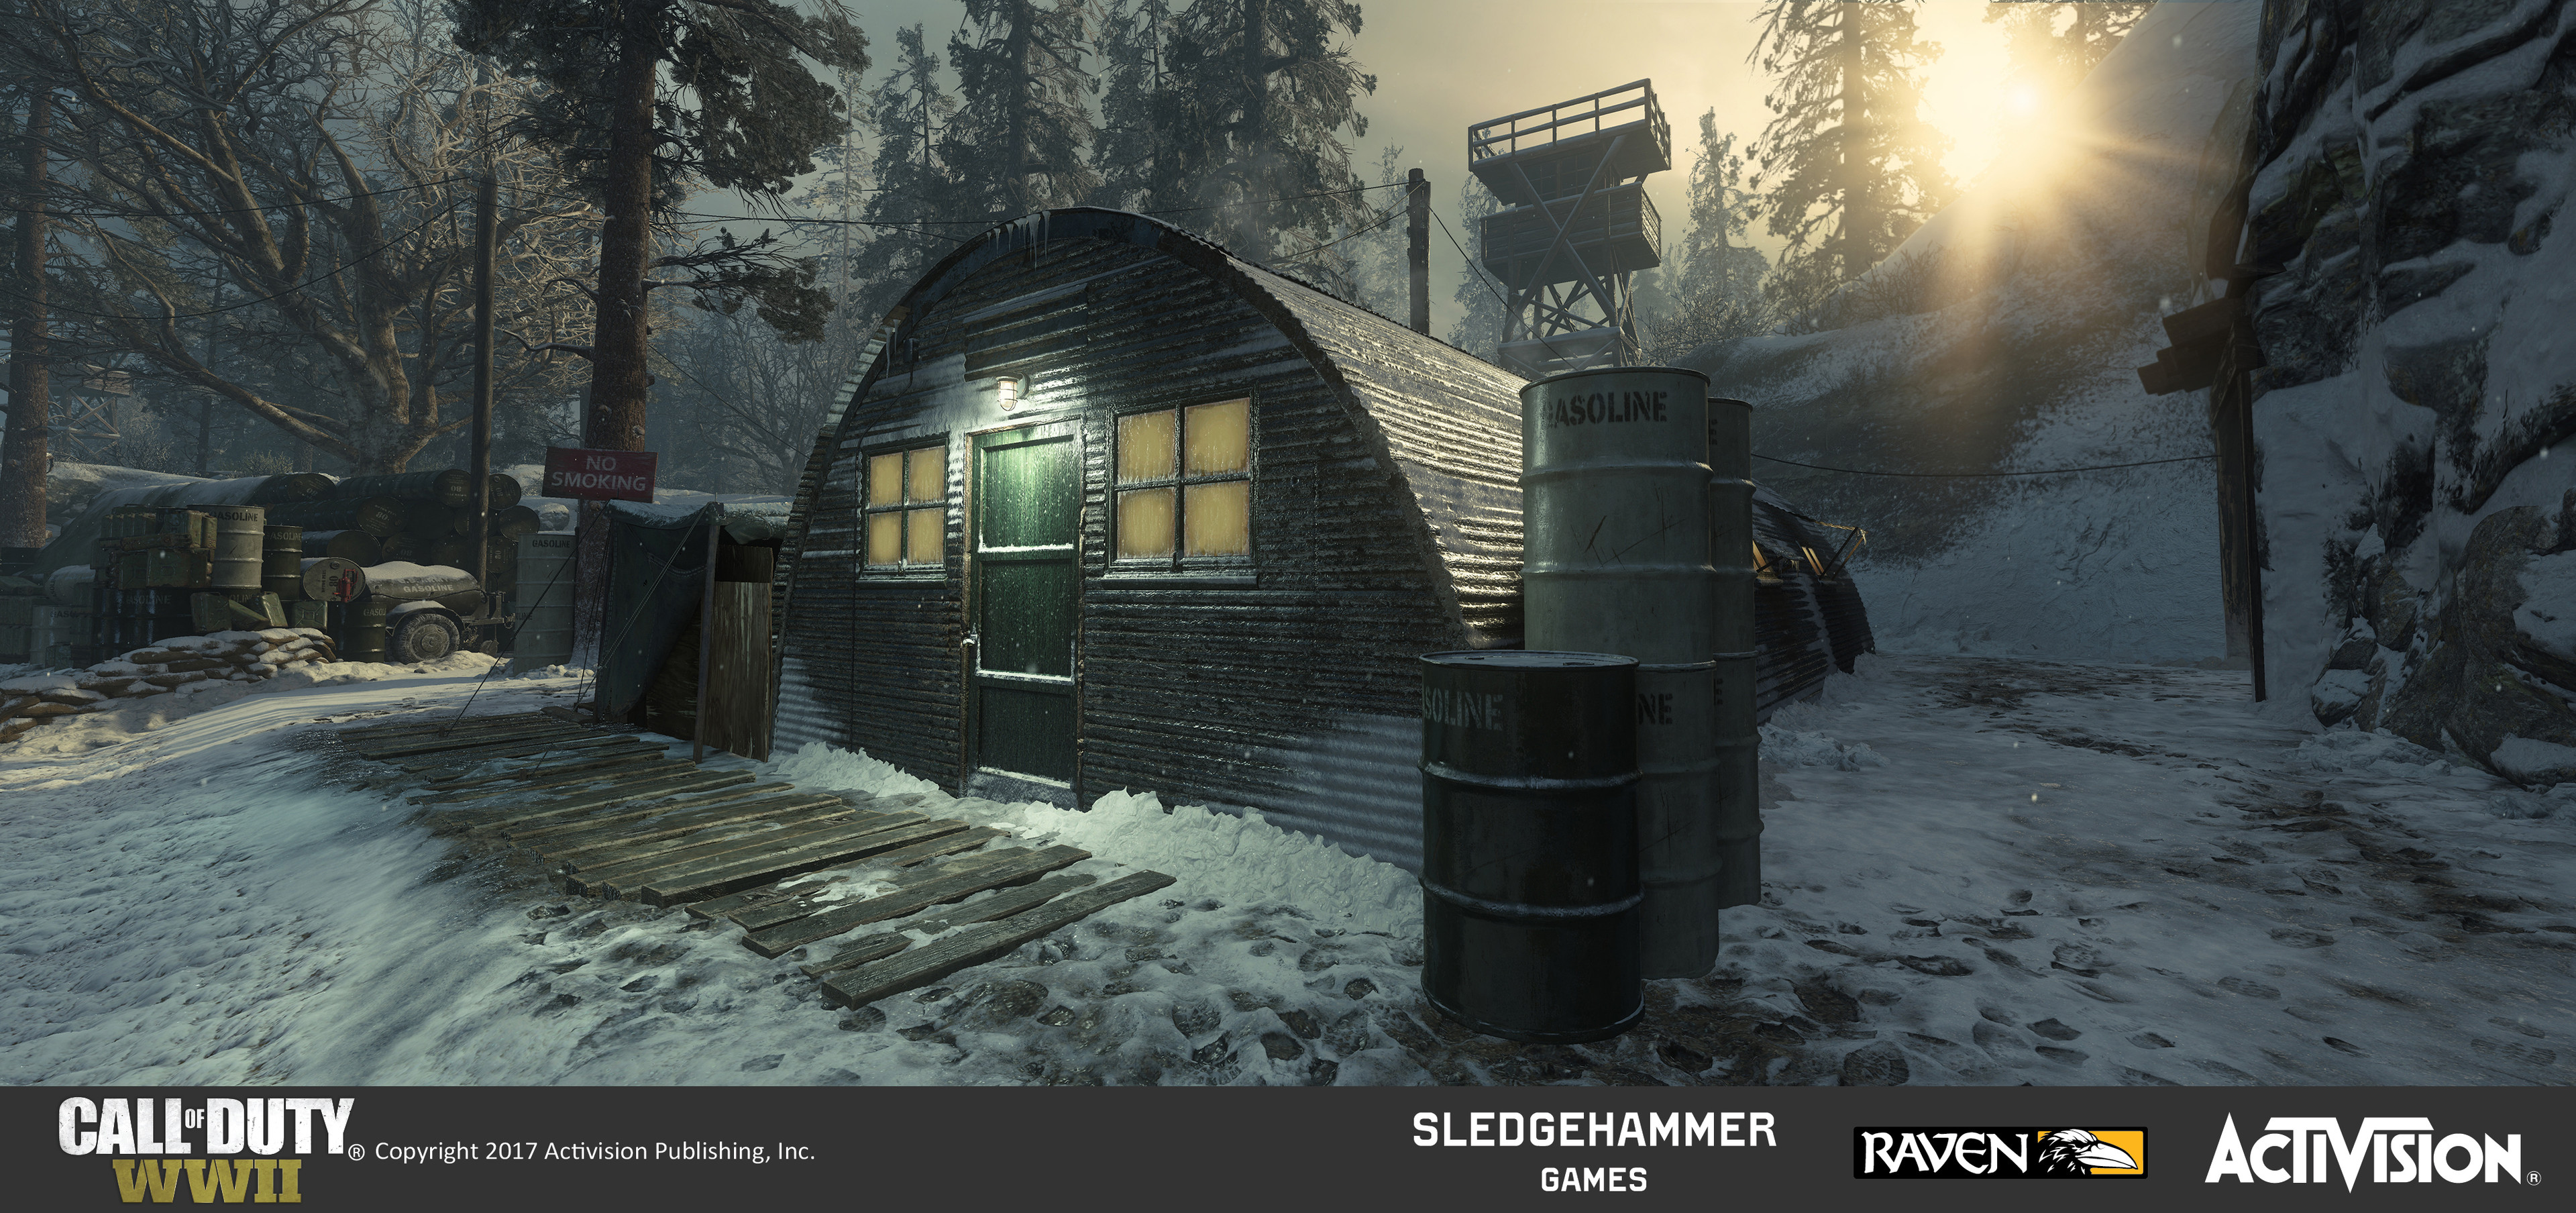 Quonset huts: Finished model of Quonset hut model in map after material painting in Substance painter. Also responsible for terrain geo and blends in the surrounding area.